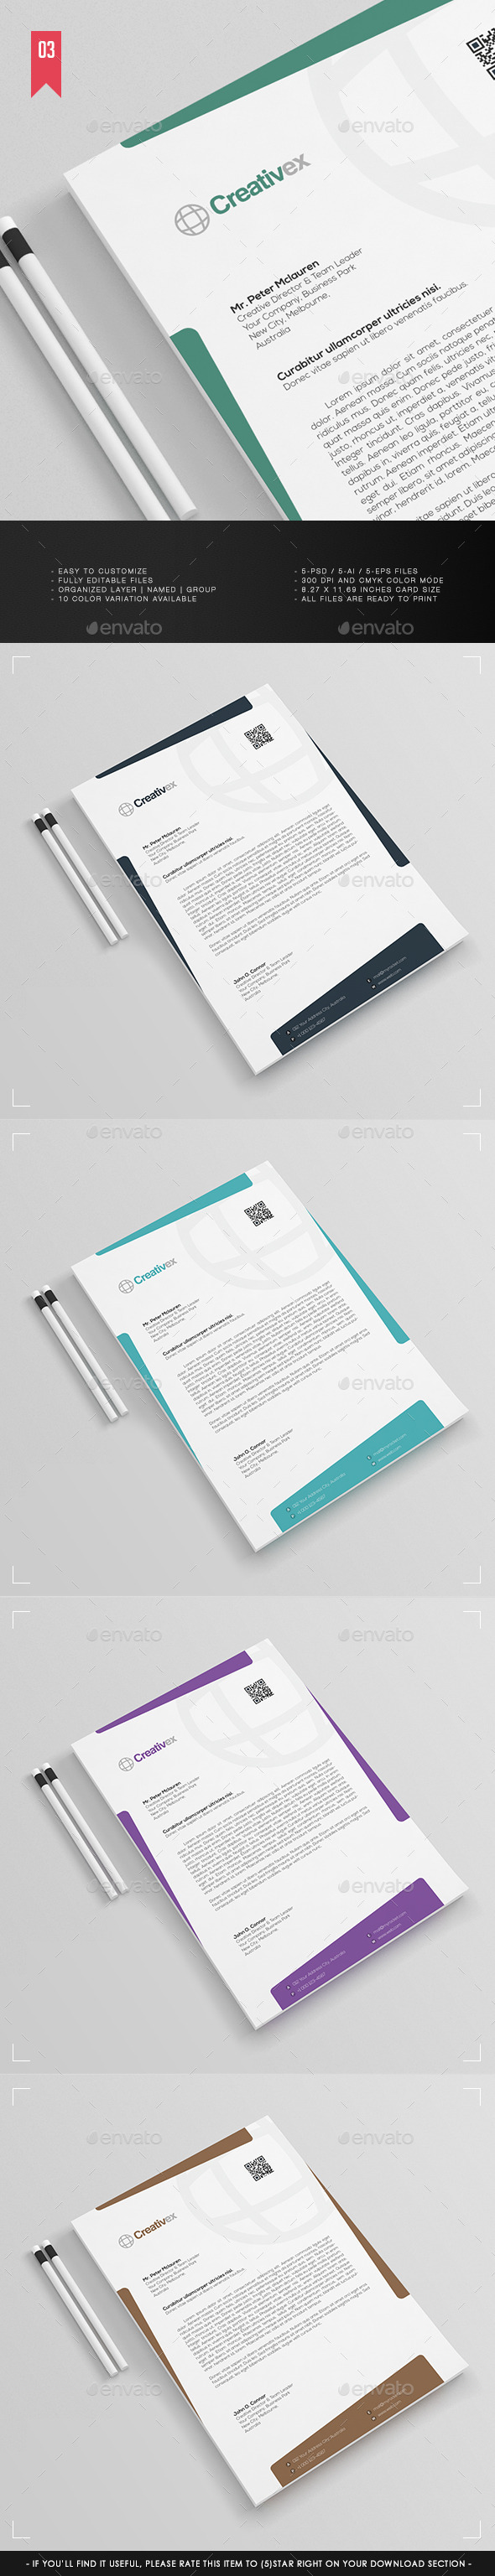 A4 - Business Letterhead V.003 - Stationery Print Templates